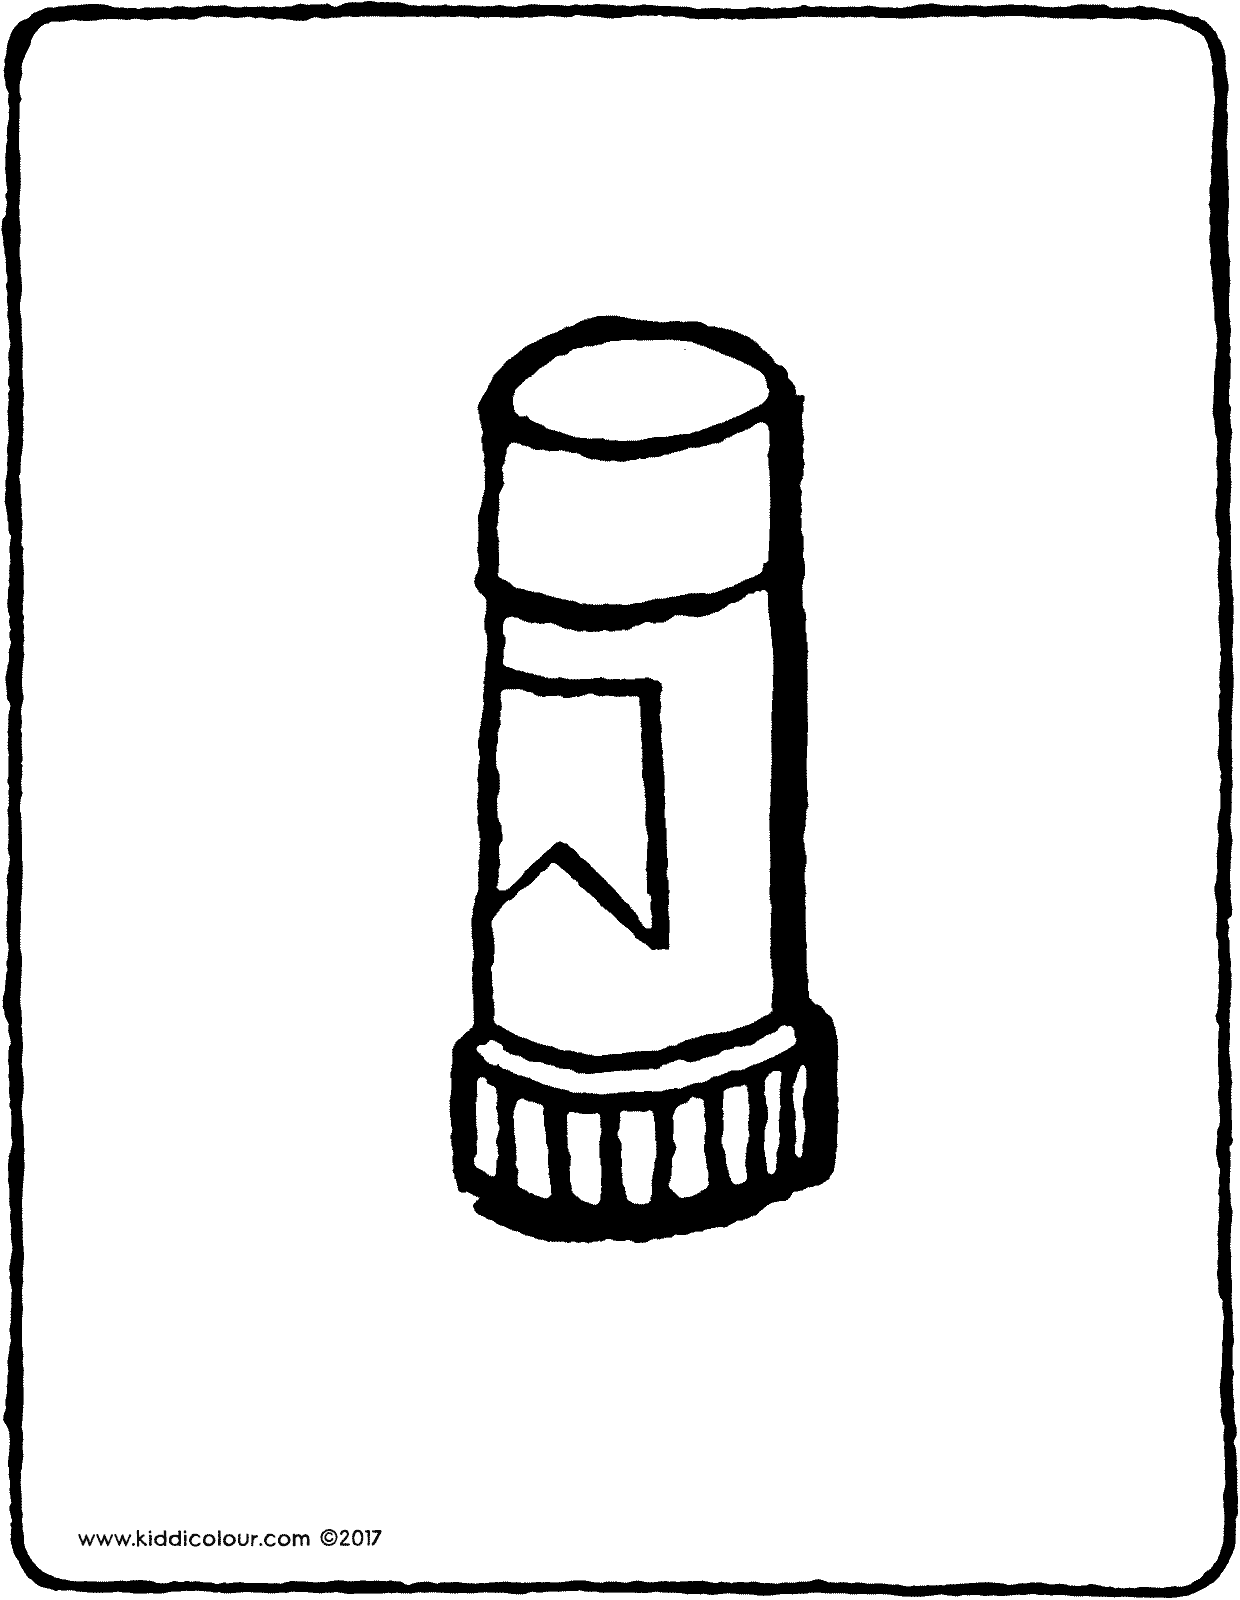 glue stick colouring page drawing picture 01V